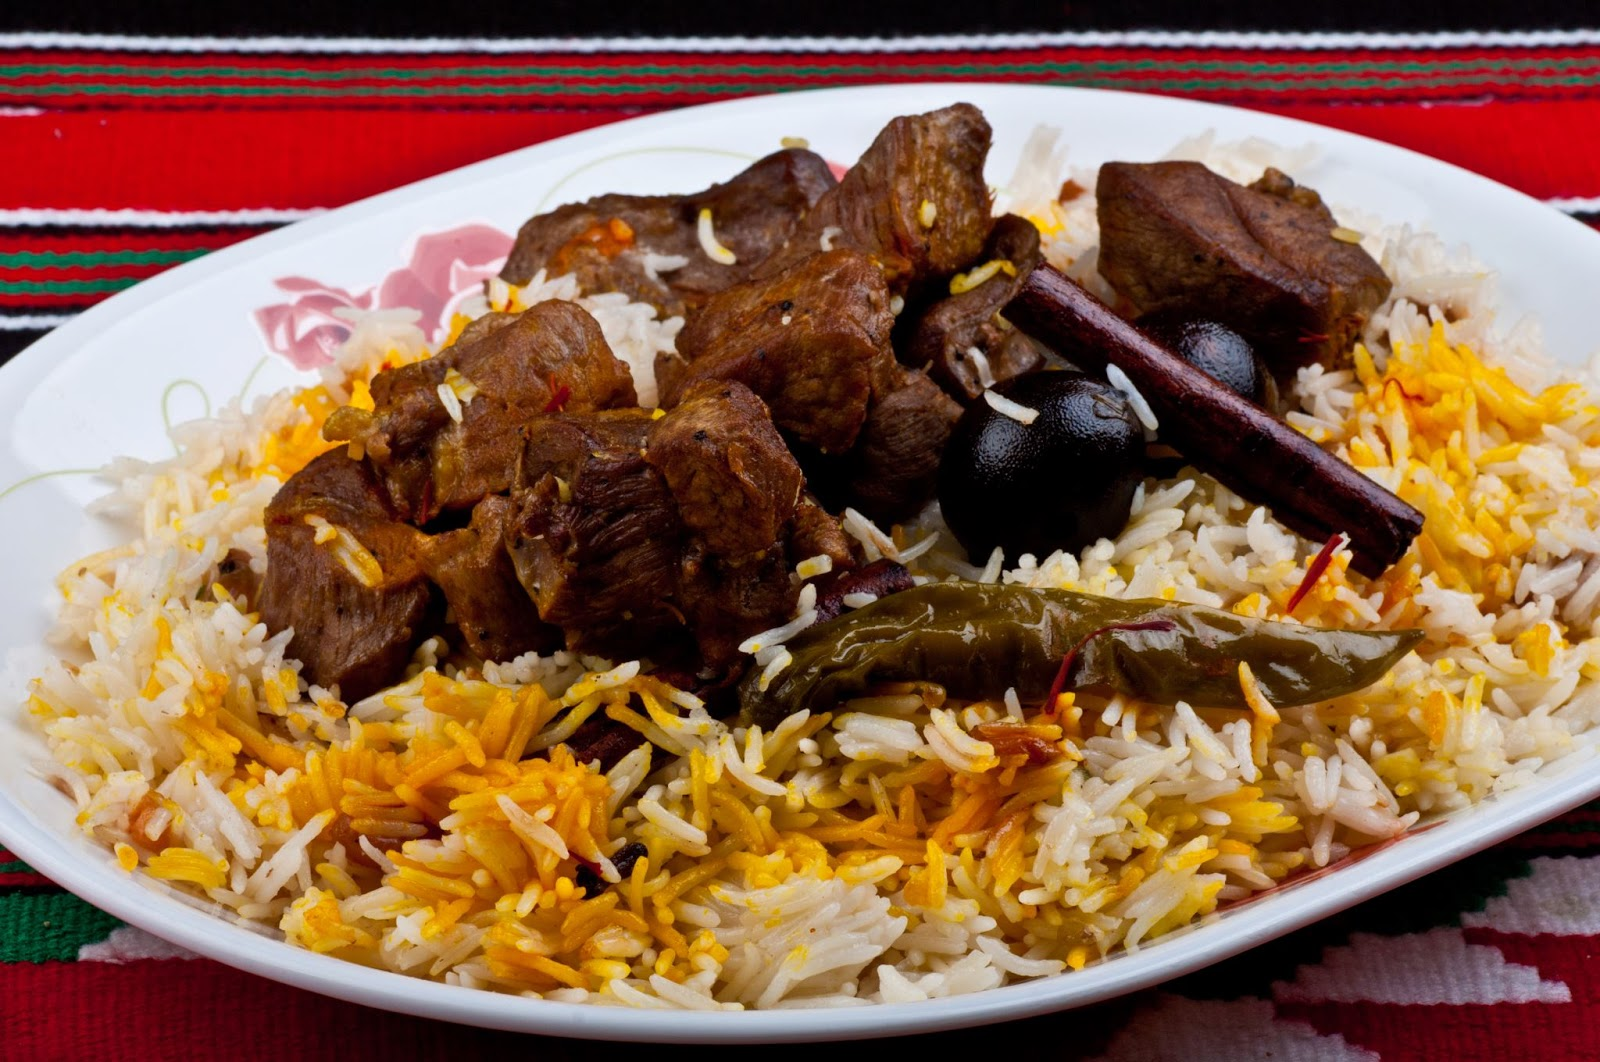 Flavours of asia lamb mandi with saffron basmati rice and raisins lamb mandi with saffron basmati rice and raisins chef ammar alis recipe for those who love arabic food forumfinder Choice Image